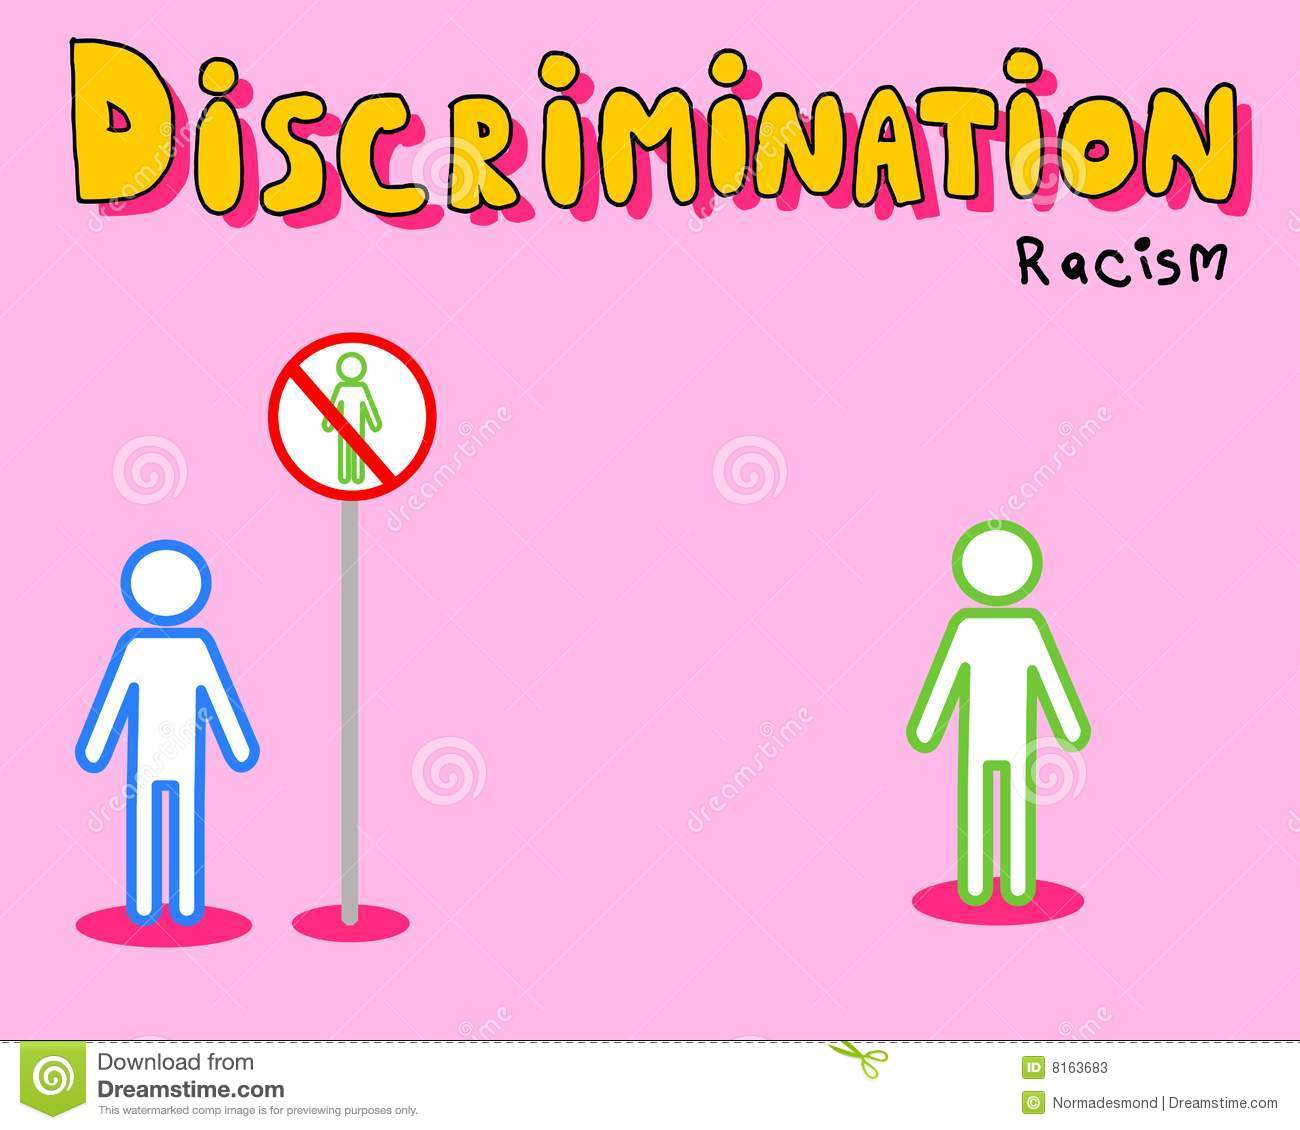 racism and discrimmination Bethany norris – unit 1 – prejudice and discrimination part one prejudice: the dictionary defines prejudice as an unfair and unreasonable opinion or feeling, especially when formed without enough thought or knowledge.